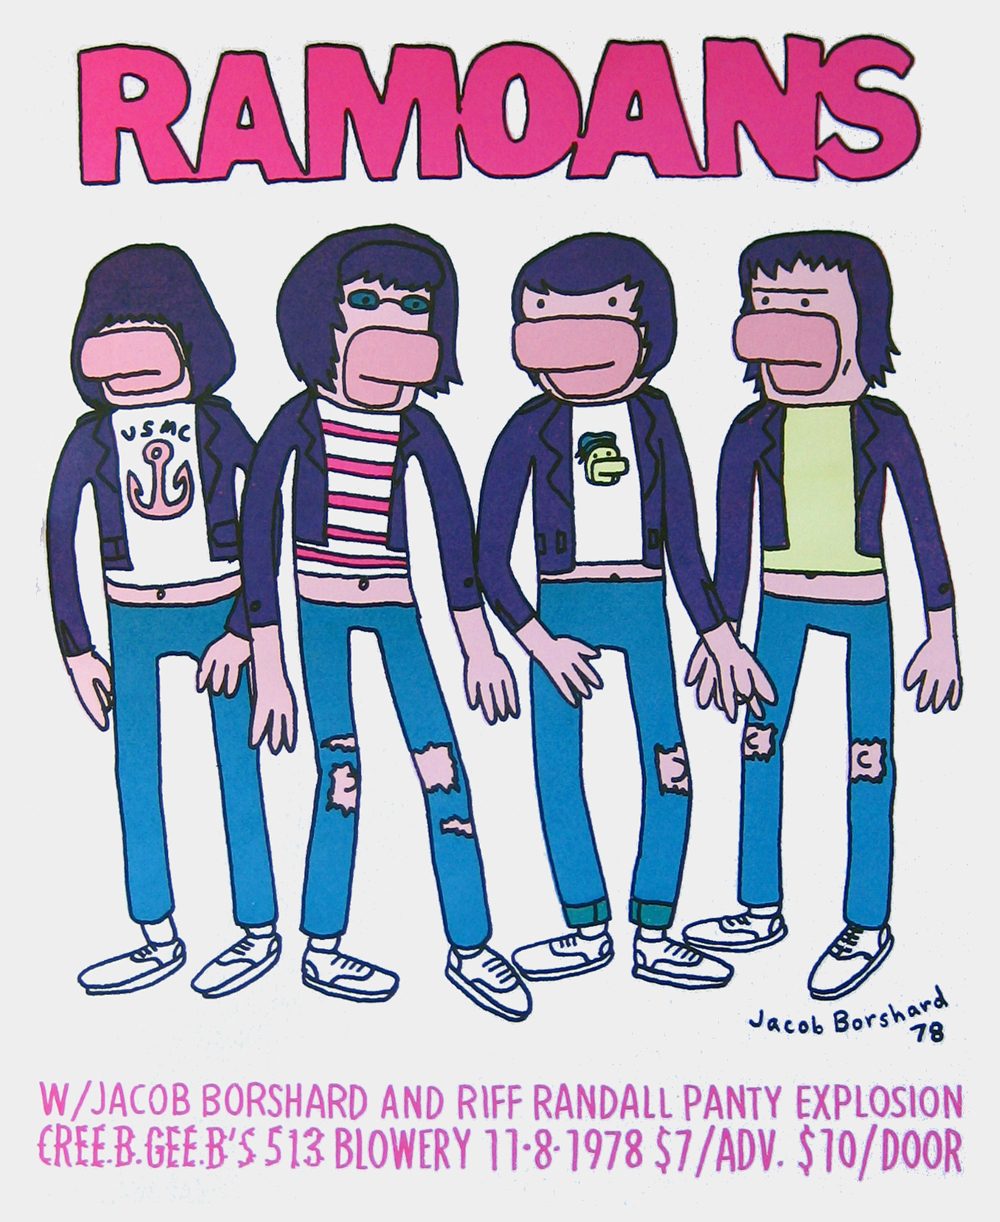 Ramoans by Jacob Borshard-